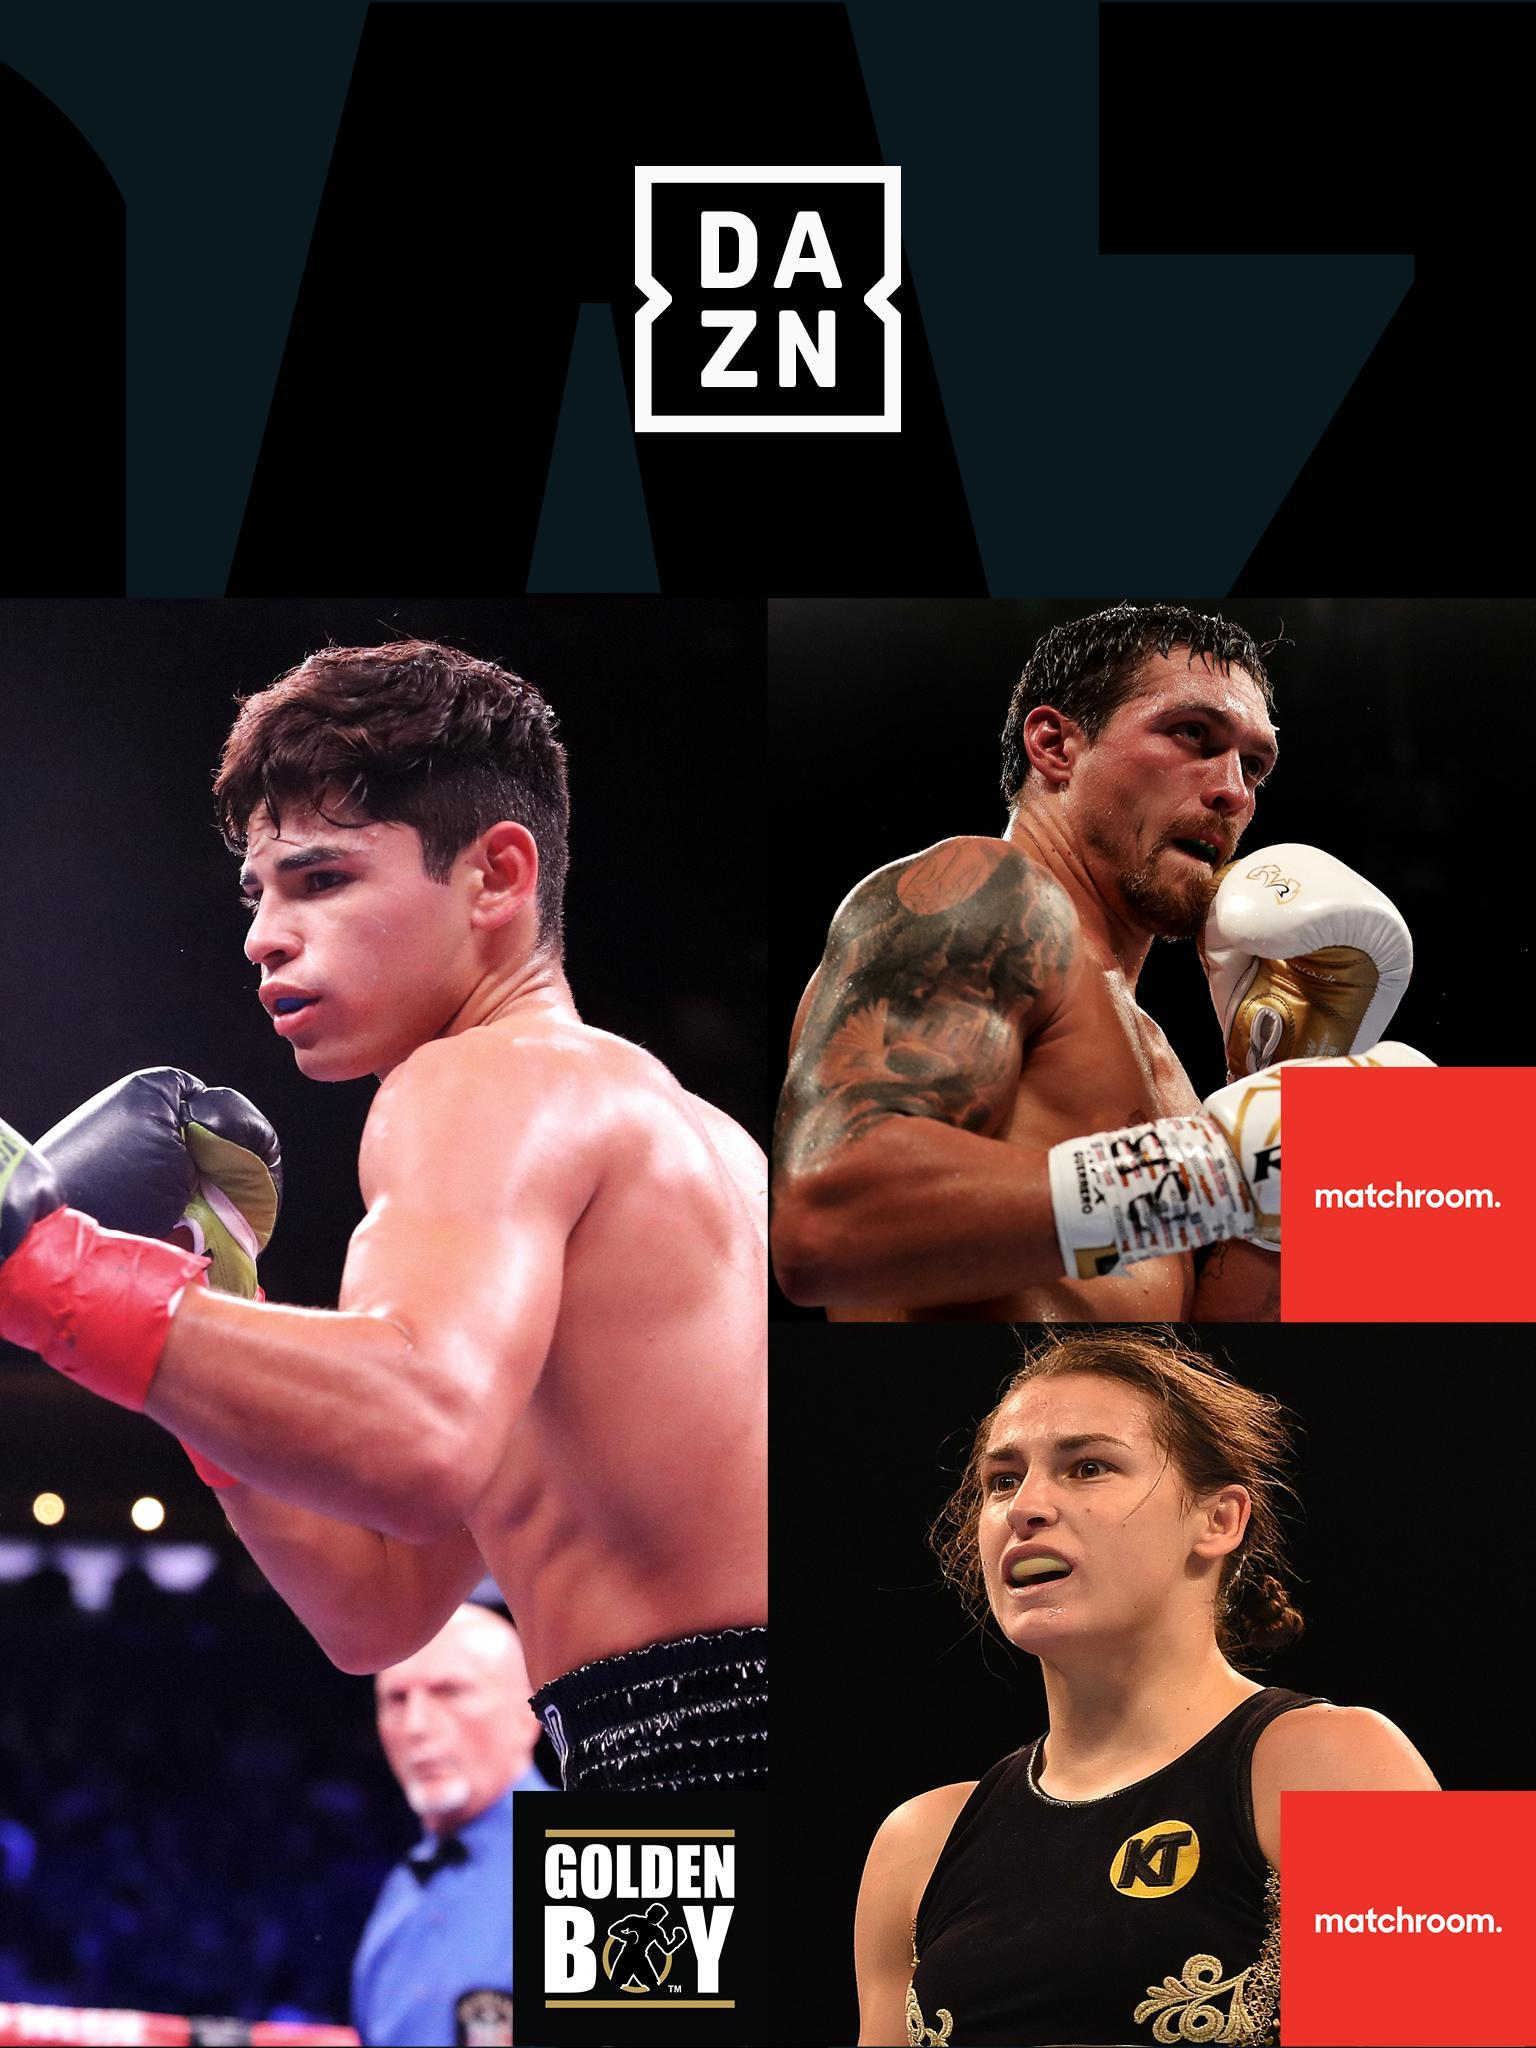 DAZN Live Fight Sports: Boxing, MMA & More 1.69.13 Screenshot 12